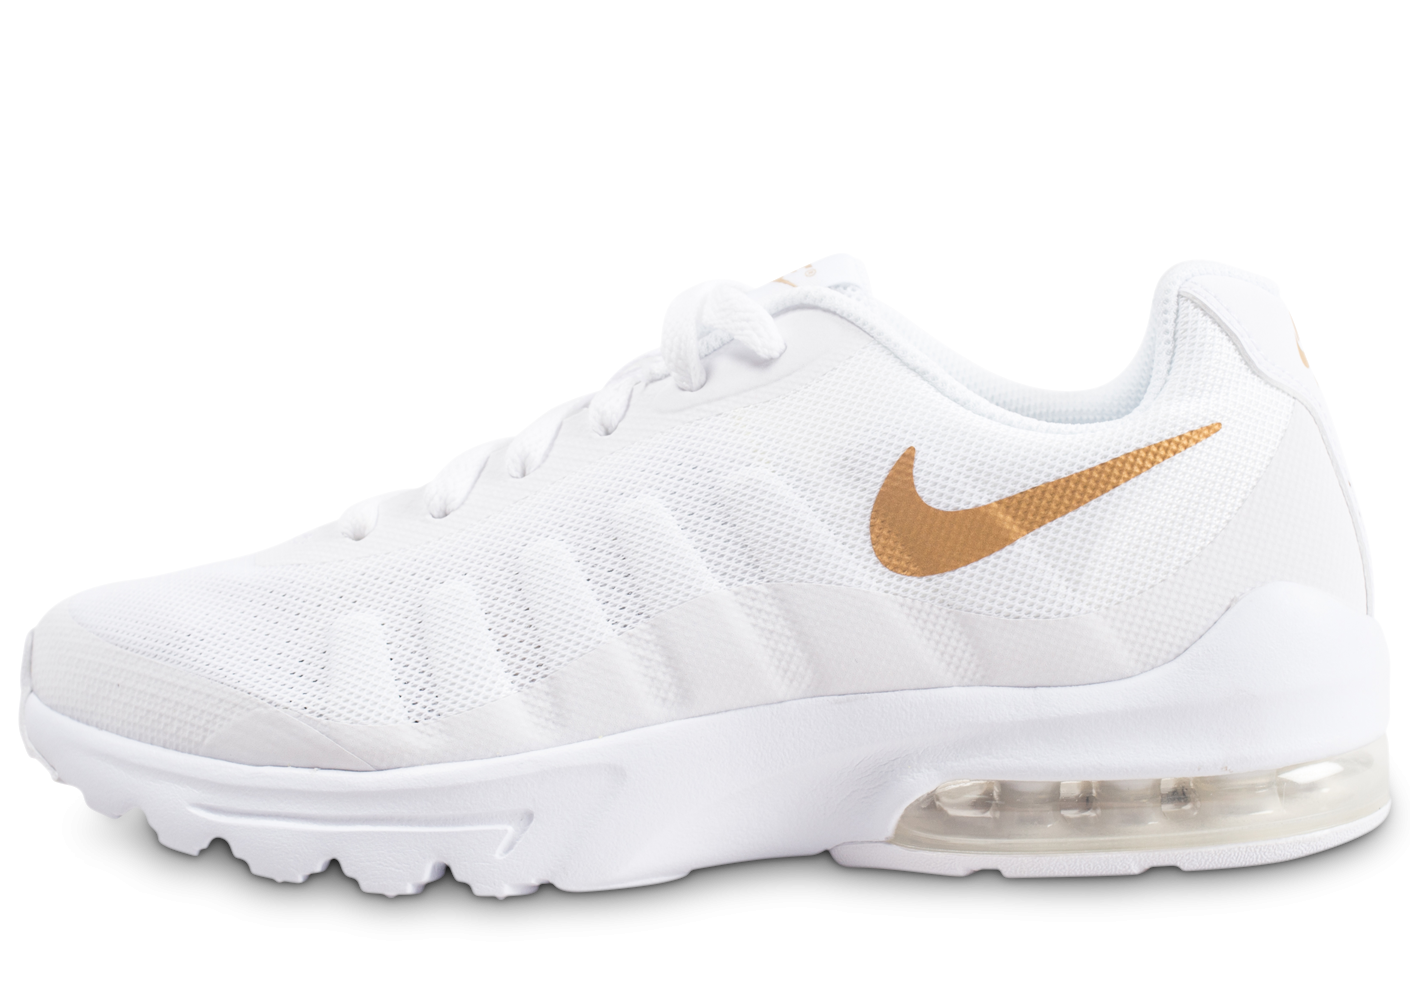 Nike Air Max Invigor blanche junior